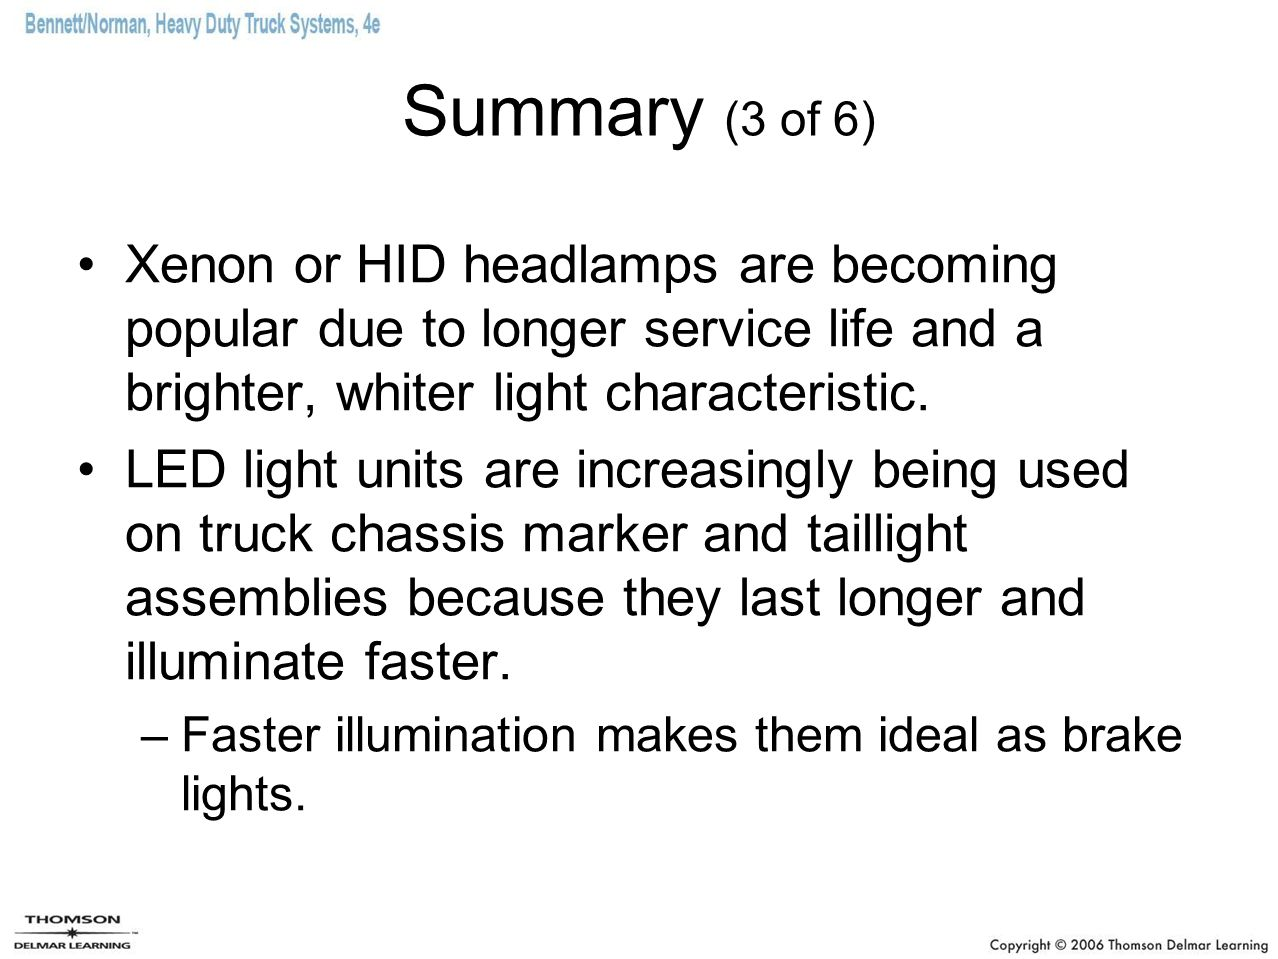 Summary (3 of 6) Xenon or HID headlamps are becoming popular due to longer service life and a brighter, whiter light characteristic.